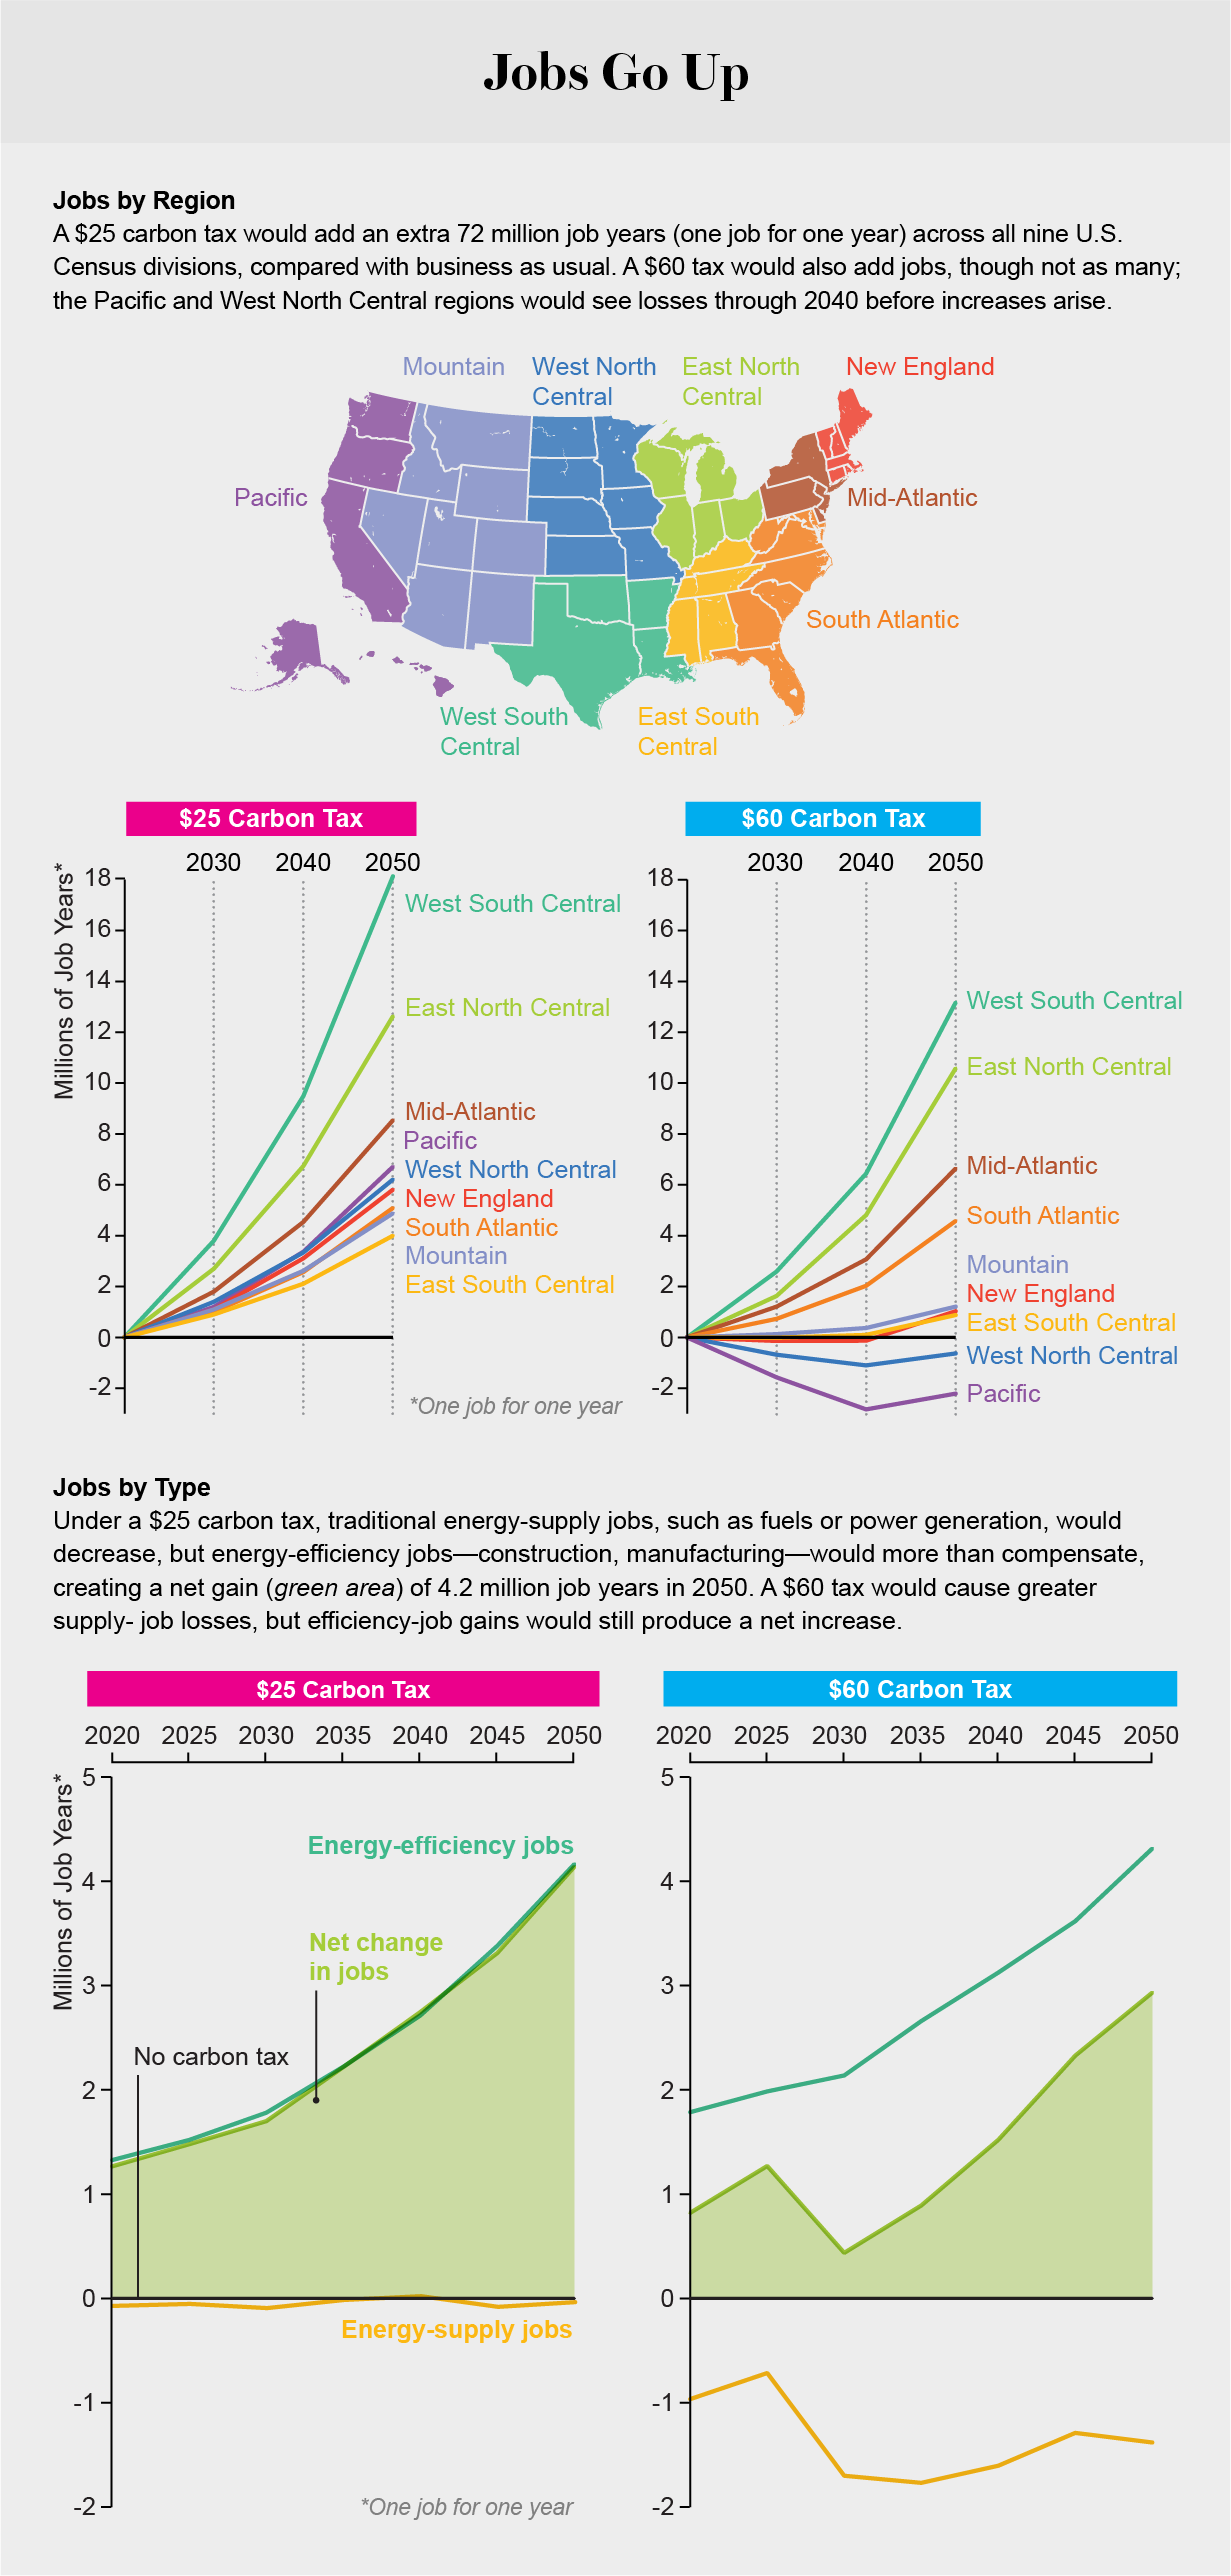 Line graphs show that a $25 or $60 carbon tax would cause a net increase in jobs from 2020 to 2050, although effects would vary by region and sector